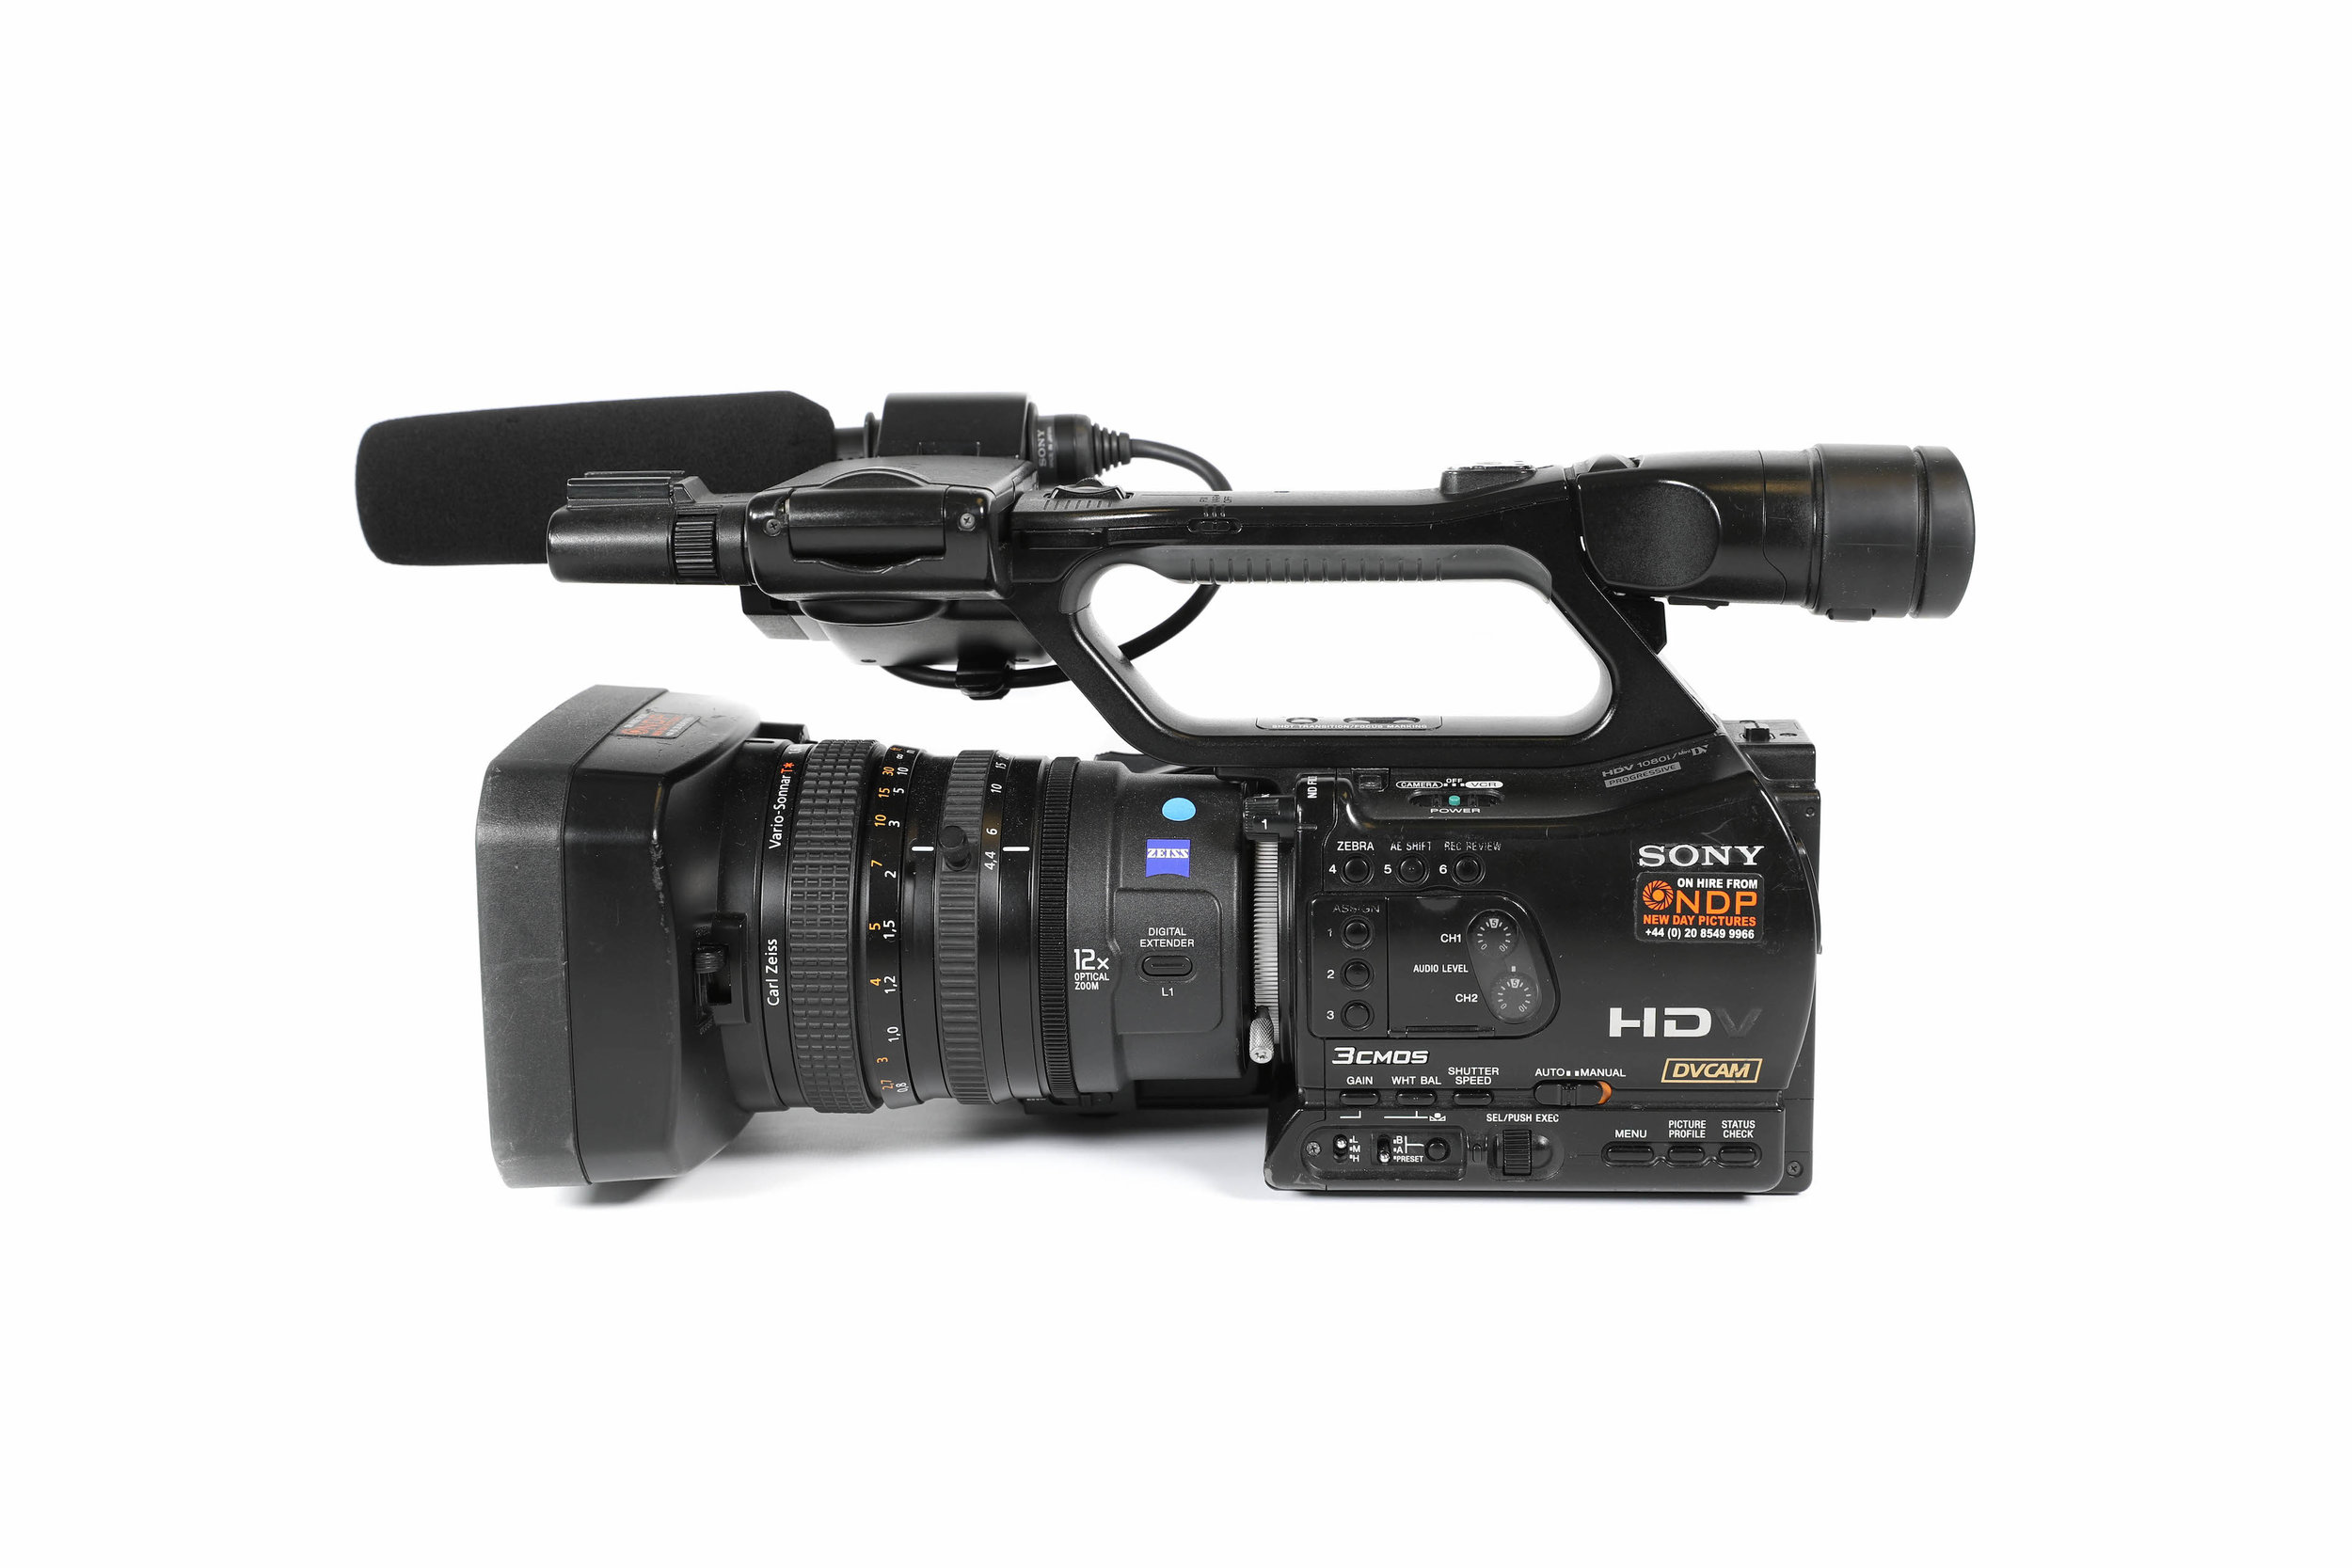 sony hvr z7e complete shooting kit hire u003cbr u003e 75 day or 295 week rh newdaypictures com Sony Handycam Camcorder sony hdv 1080i user manual